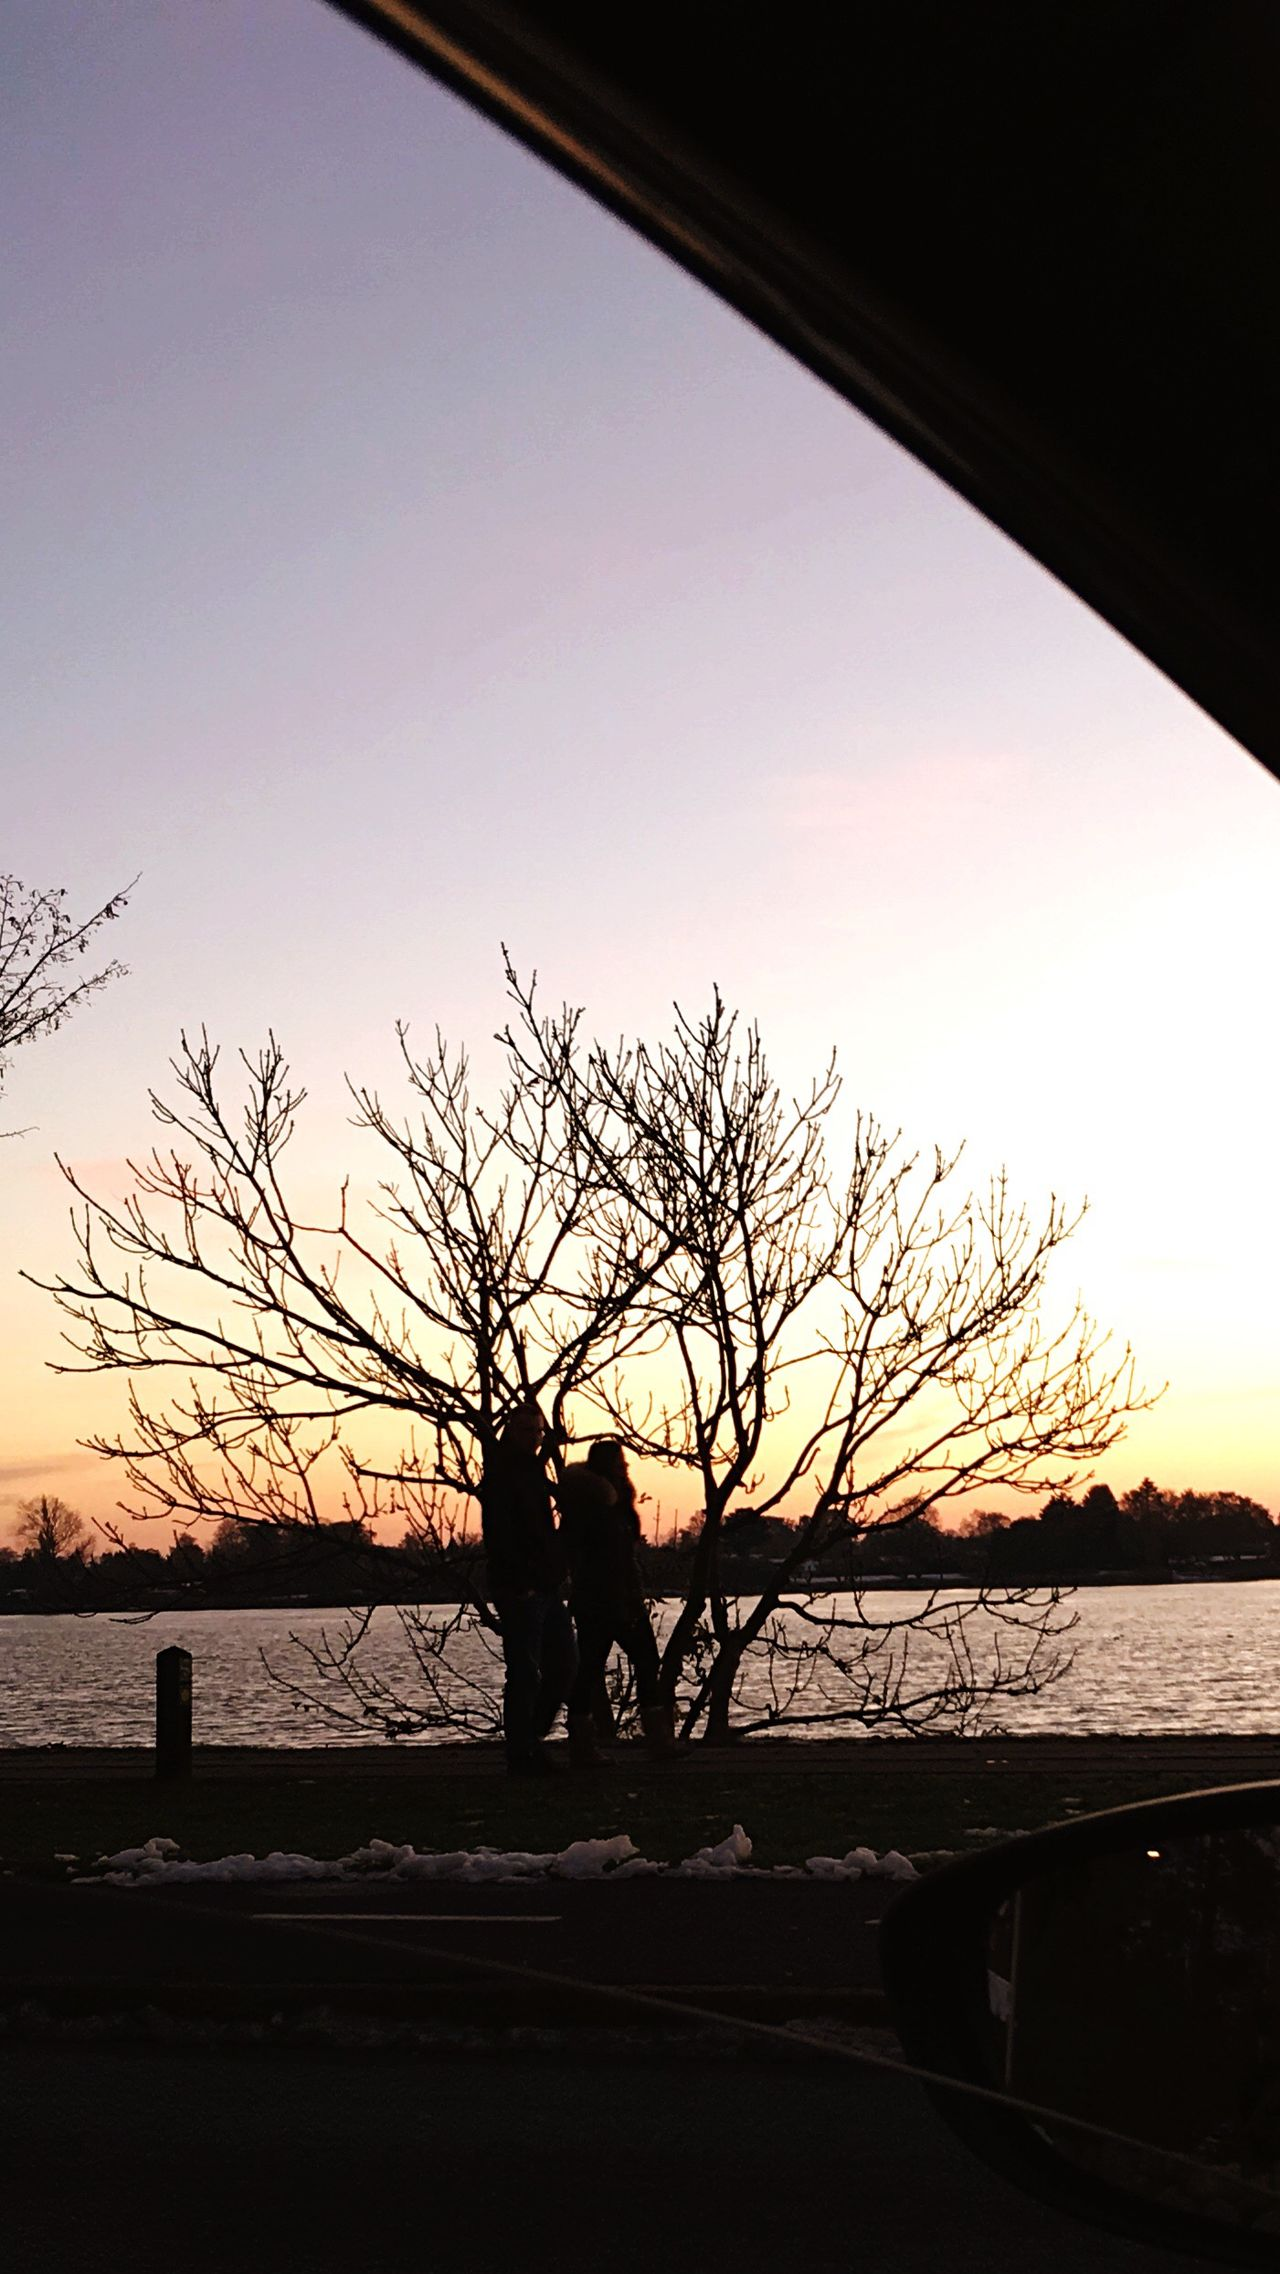 Sunset Silhouette Real People Sky Outdoors Men Lifestyles Nature Beauty In Nature Love Girl Boy Water Day Danmark First Eyeem Photo